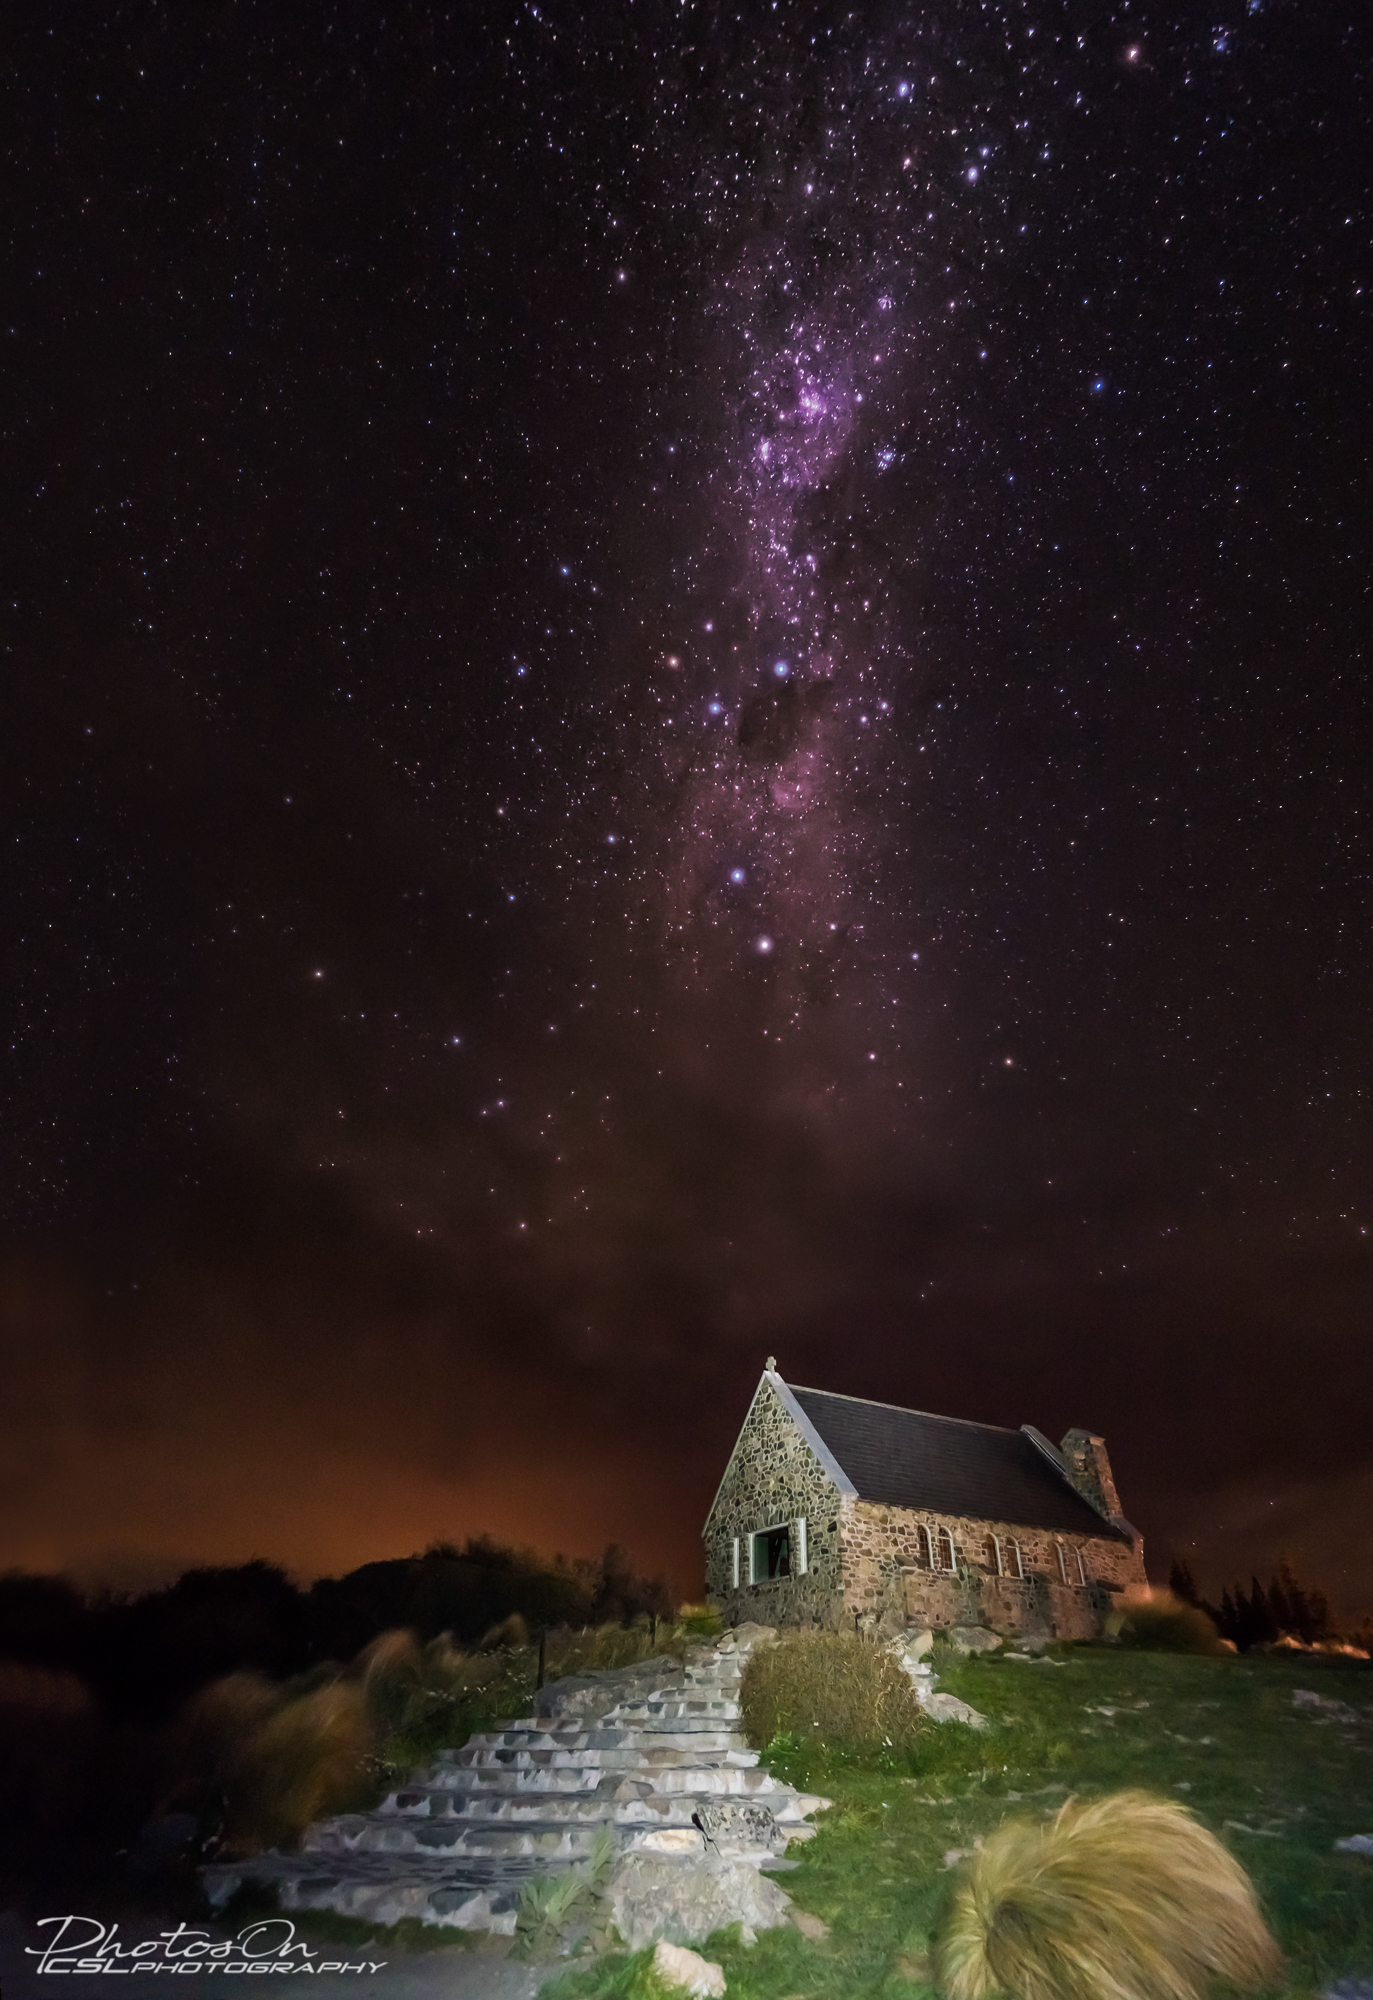 pon-2000_csl4540-laketekapo-goodshepherdchurch-night2.jpg